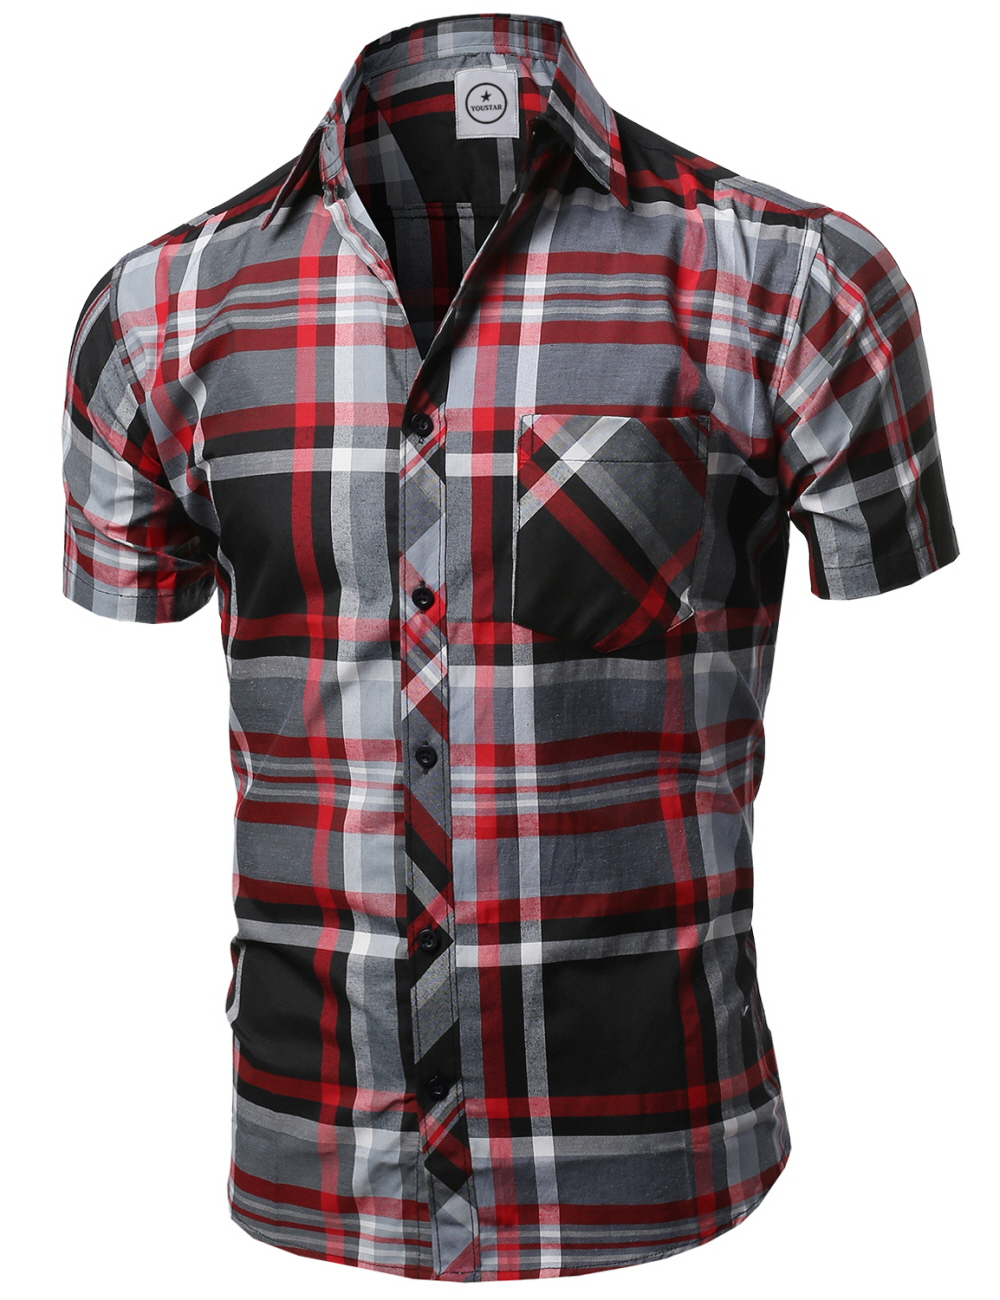 Fashionoutfit men 39 s casual short sleeve collar buttondown Short sleeve plaid shirts